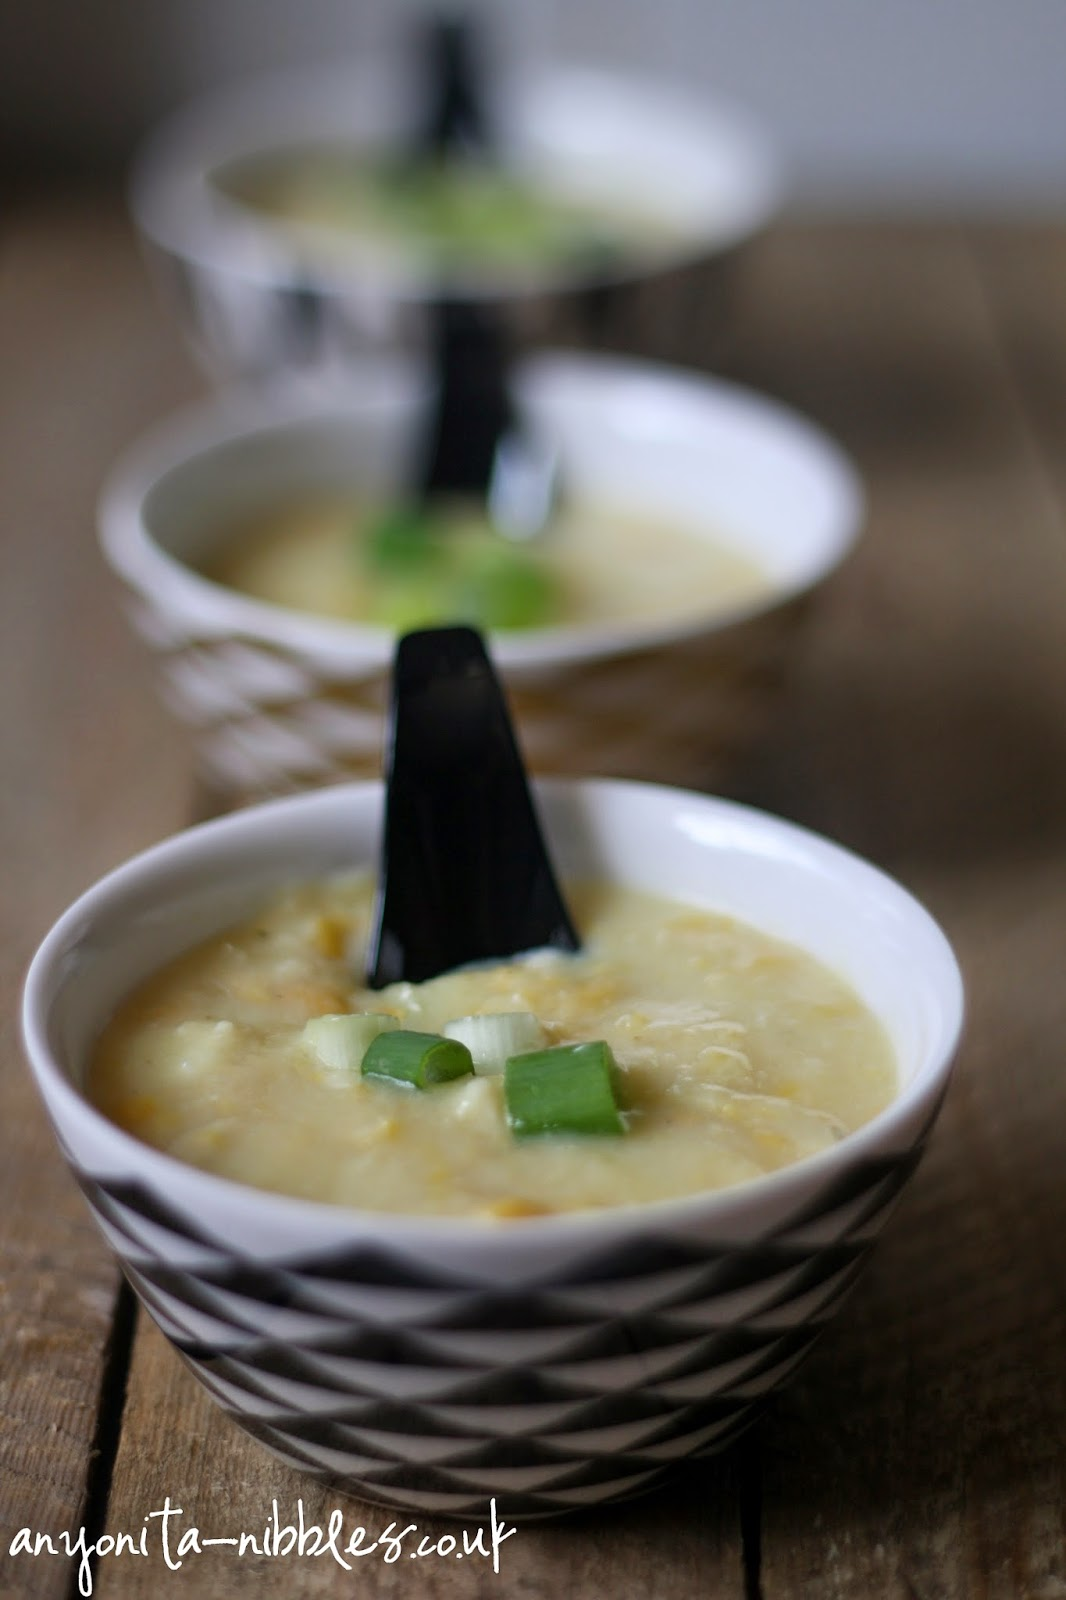 Gluten Free Creamy Chinese Chicken & Sweetcorn Soup from Anyonita-nibbles.co.uk